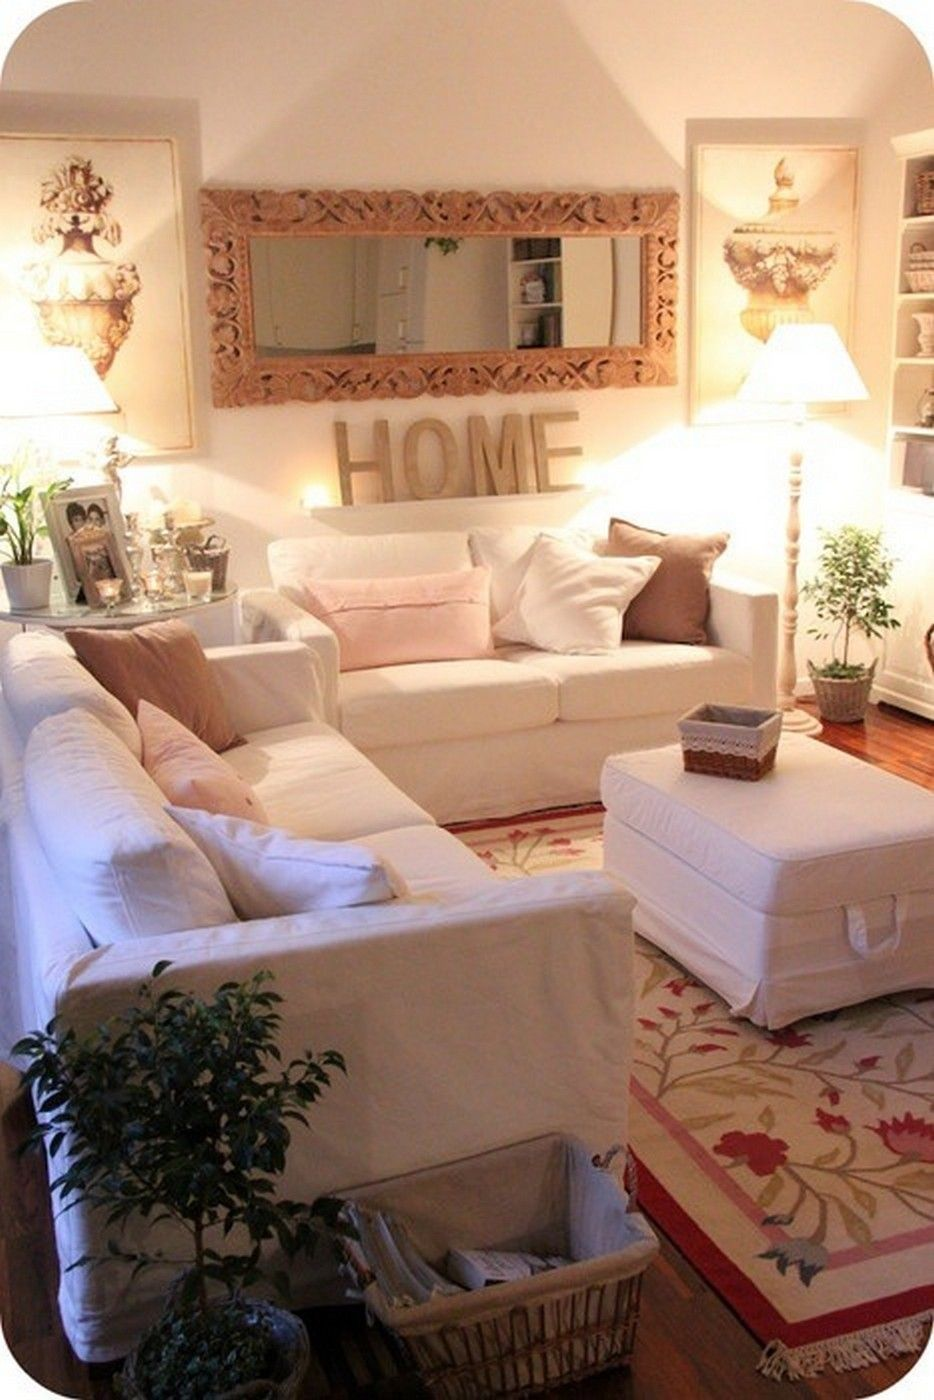 Small Apartment Decorating Ideas On A Budget Top 4 Ideas Goodworksfurniture In 2020 Small Apartment Living Room Small Living Room Decor Small Apartment Decorating